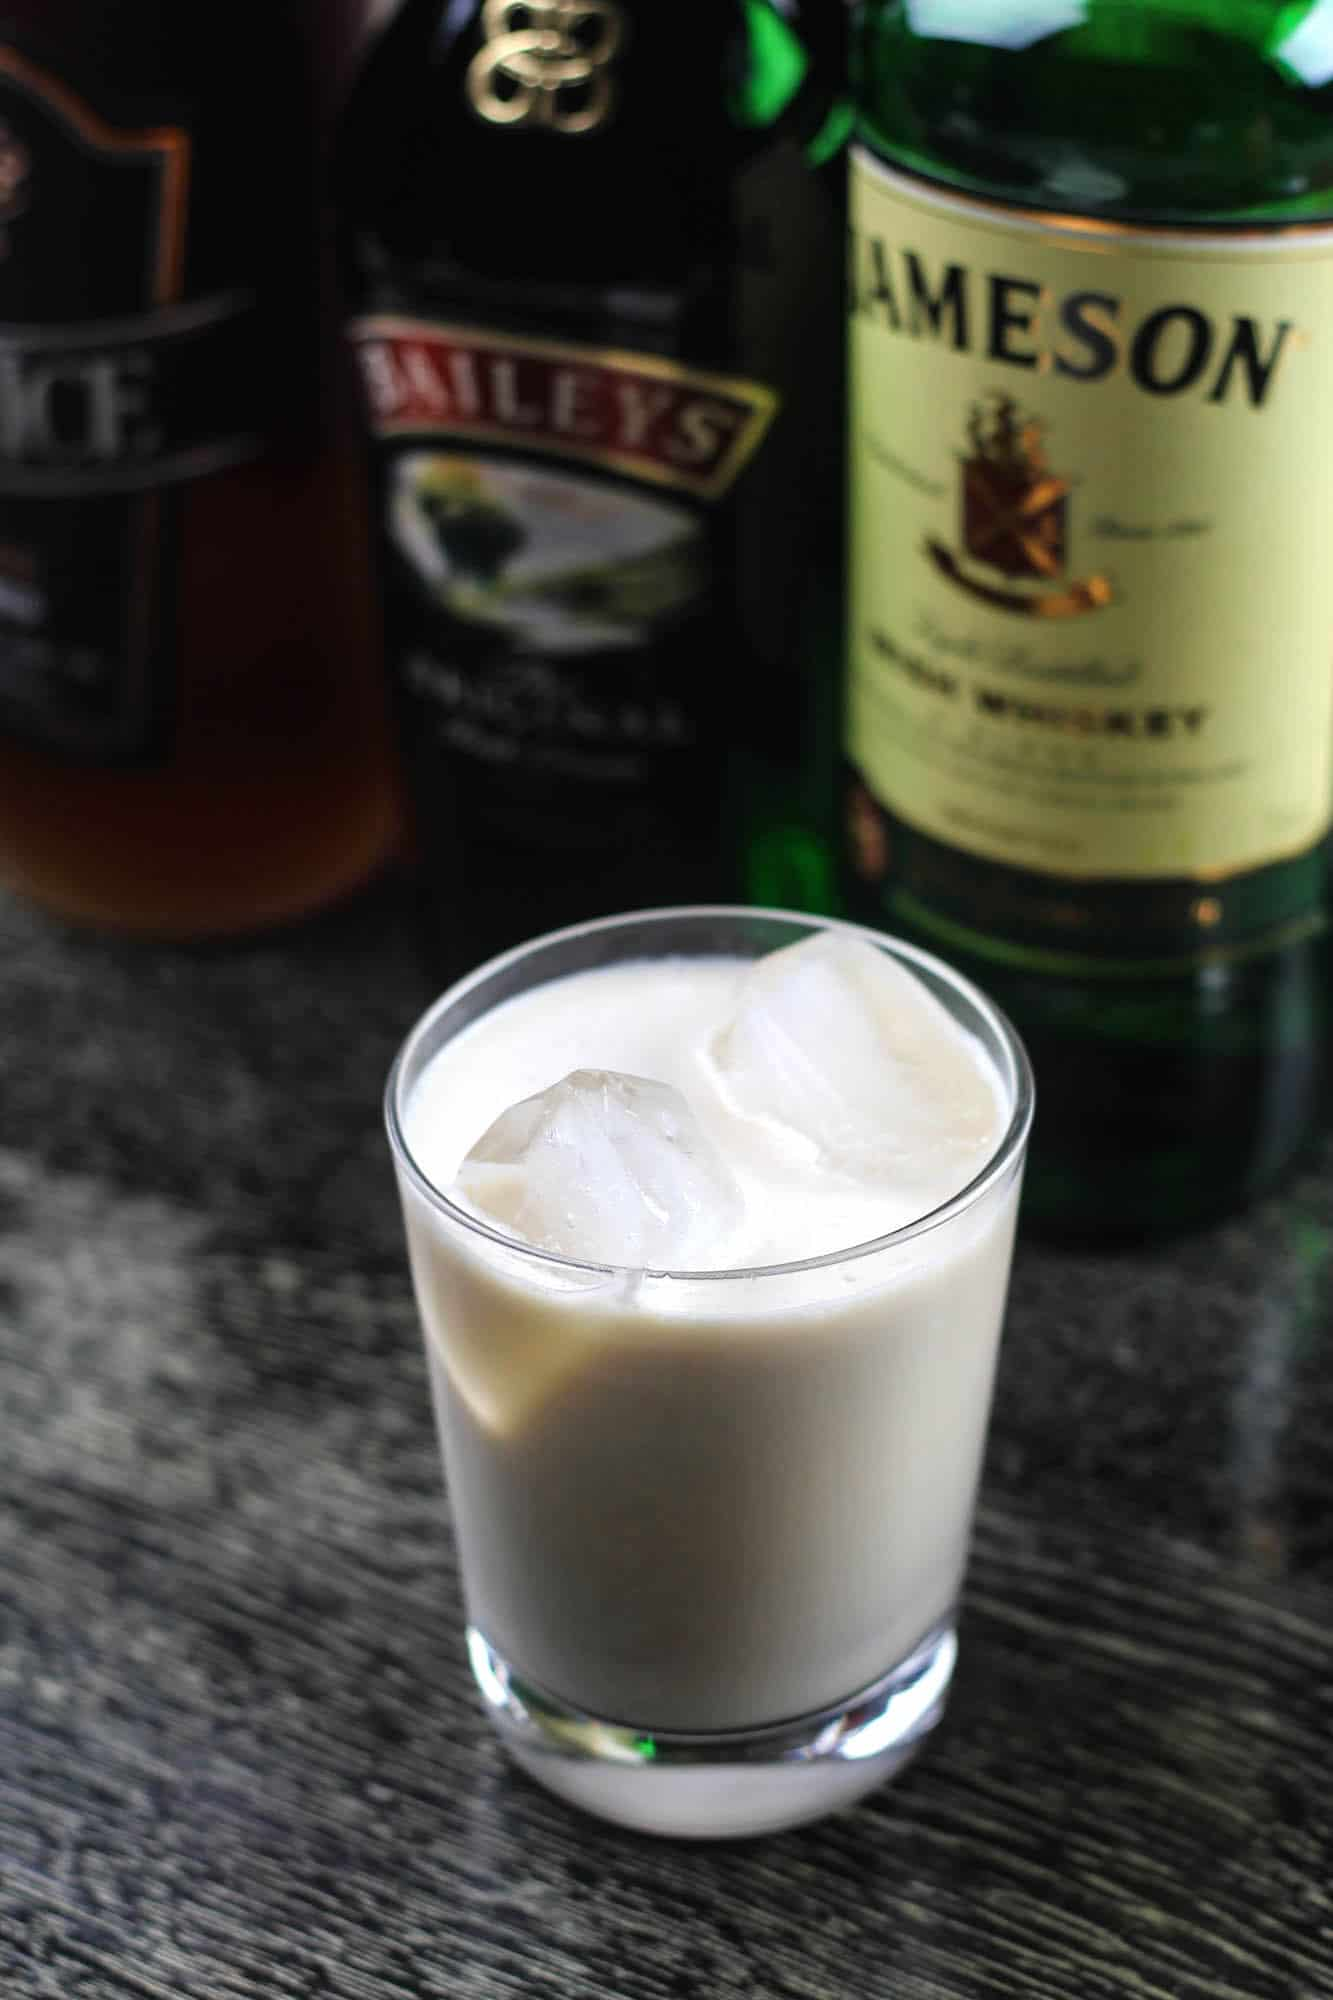 White leprechaun in a glass - white Russian cocktail with whiskey instead of vodka